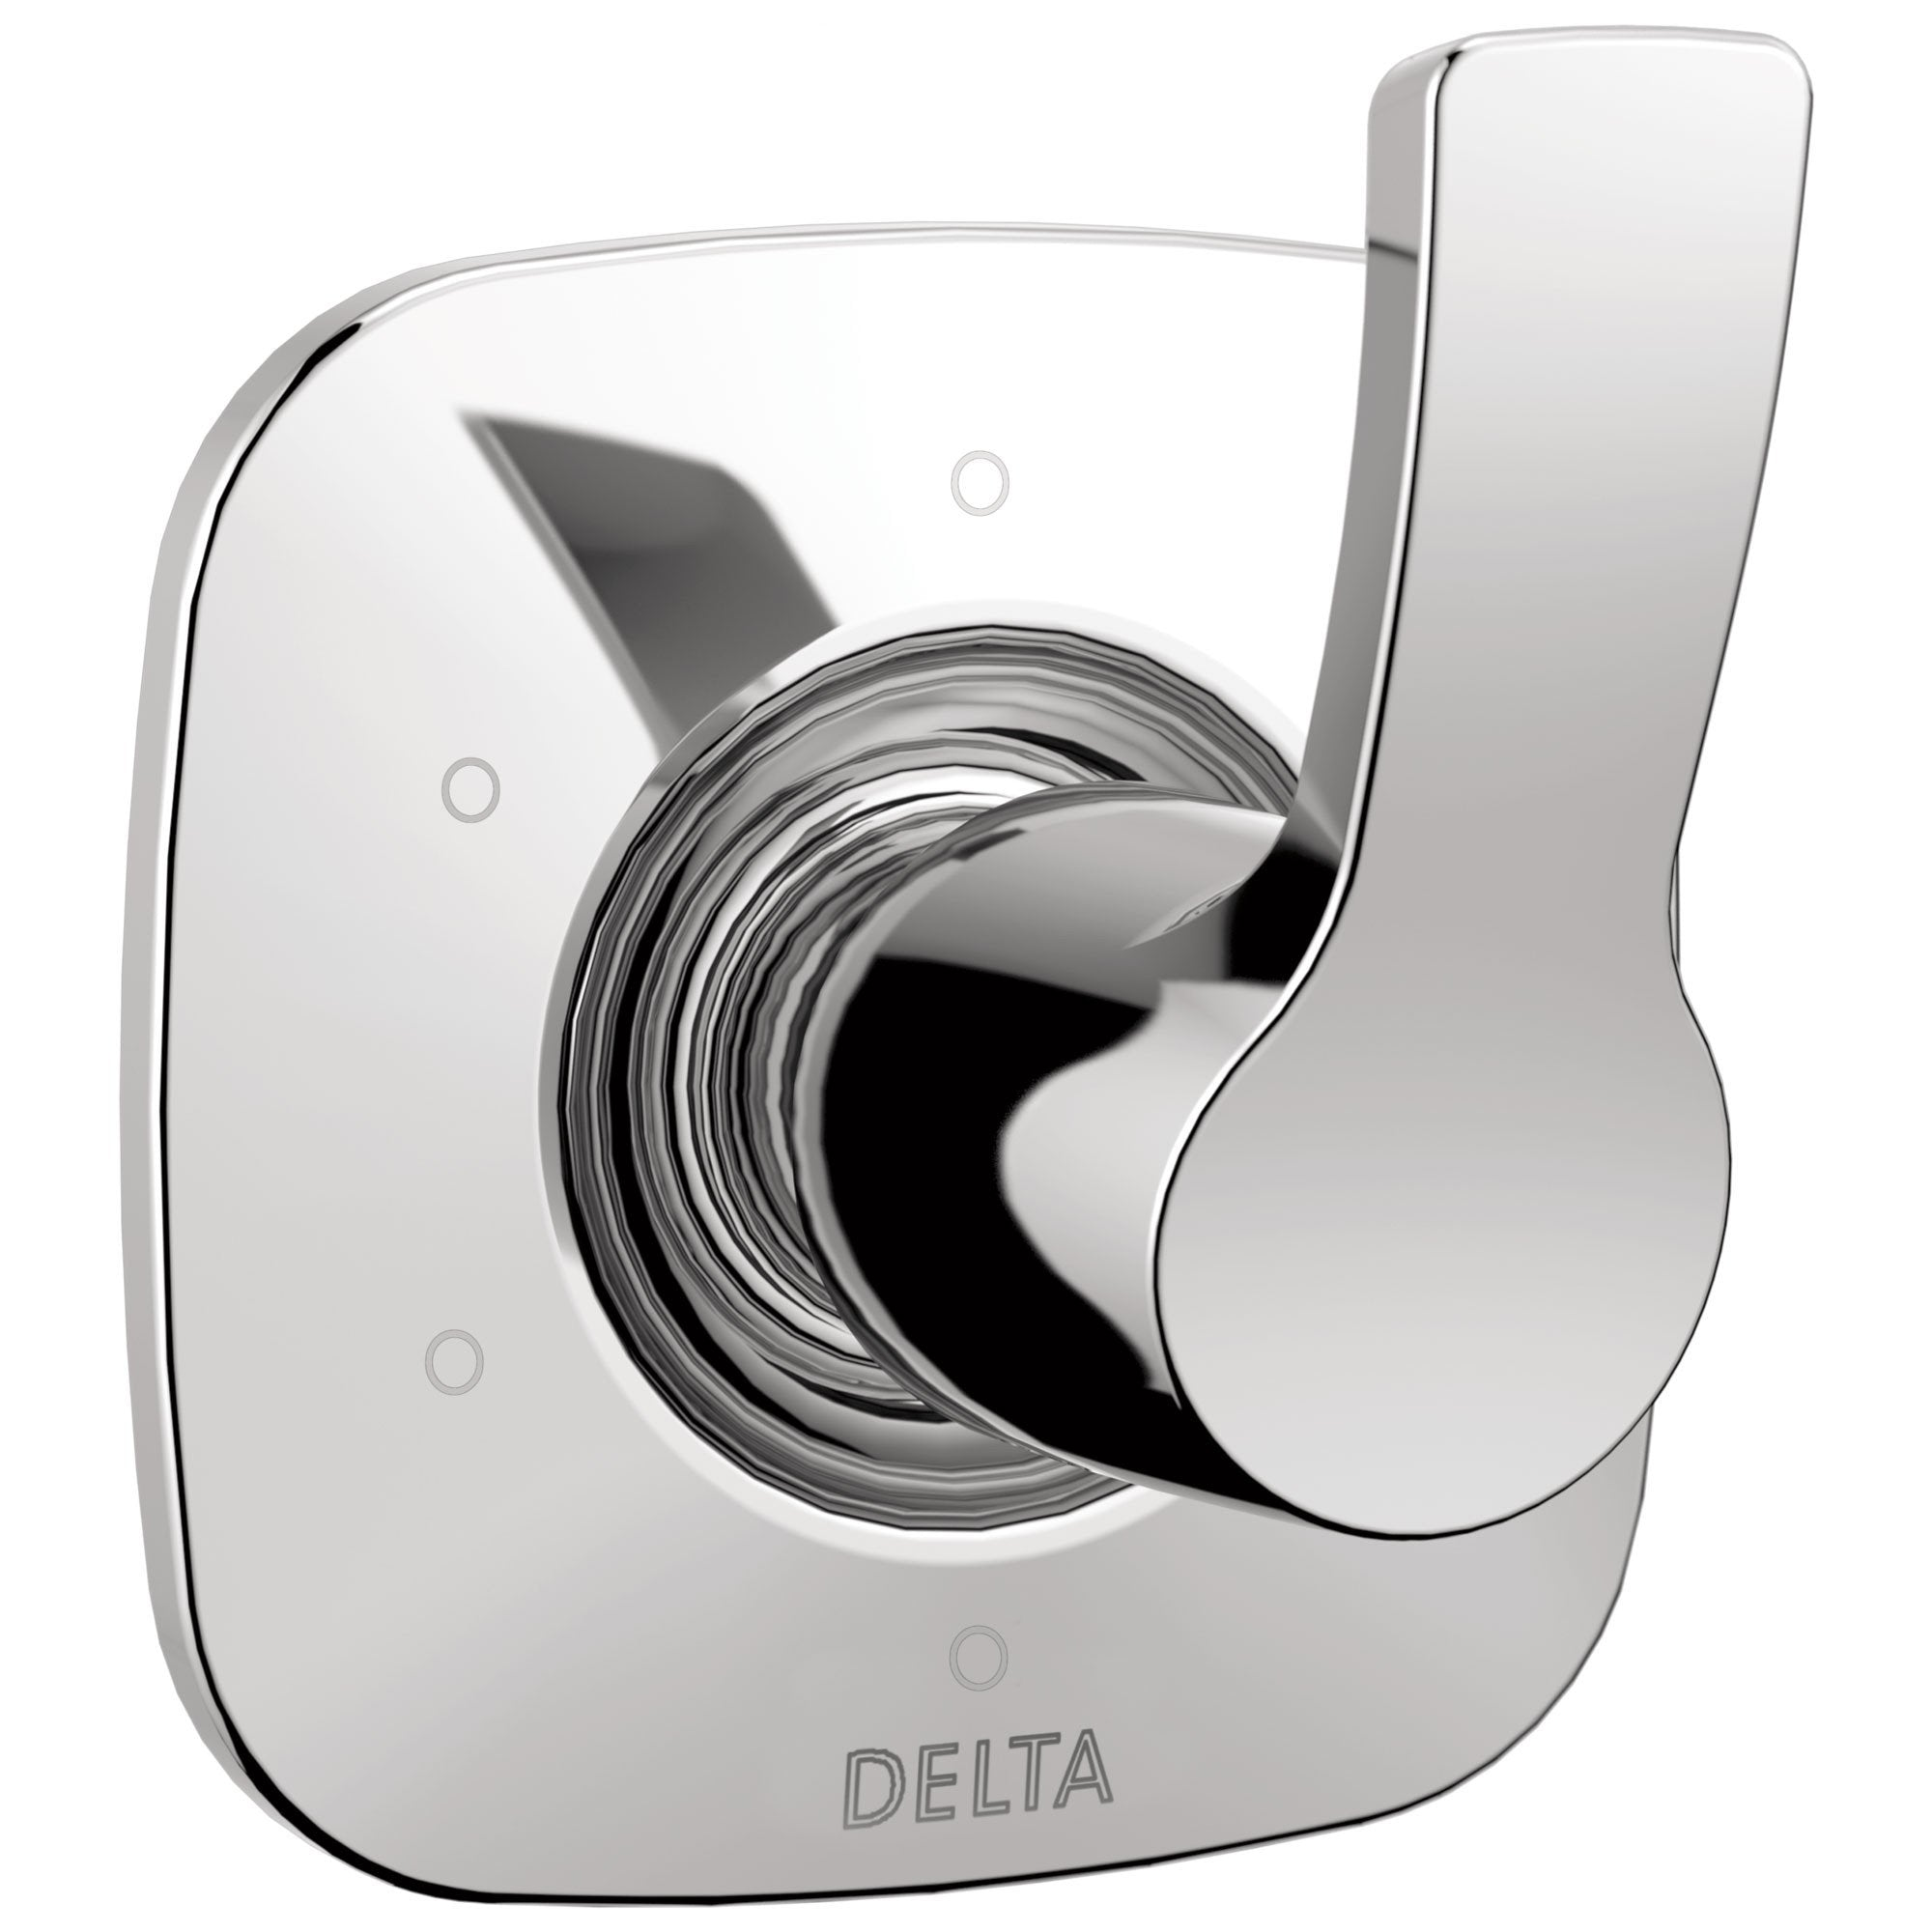 Delta Tesla Collection Chrome Finish 6-Setting 3-Port Modern Single Handle Shower Diverter Trim Kit (Valve Sold Separately) 714330